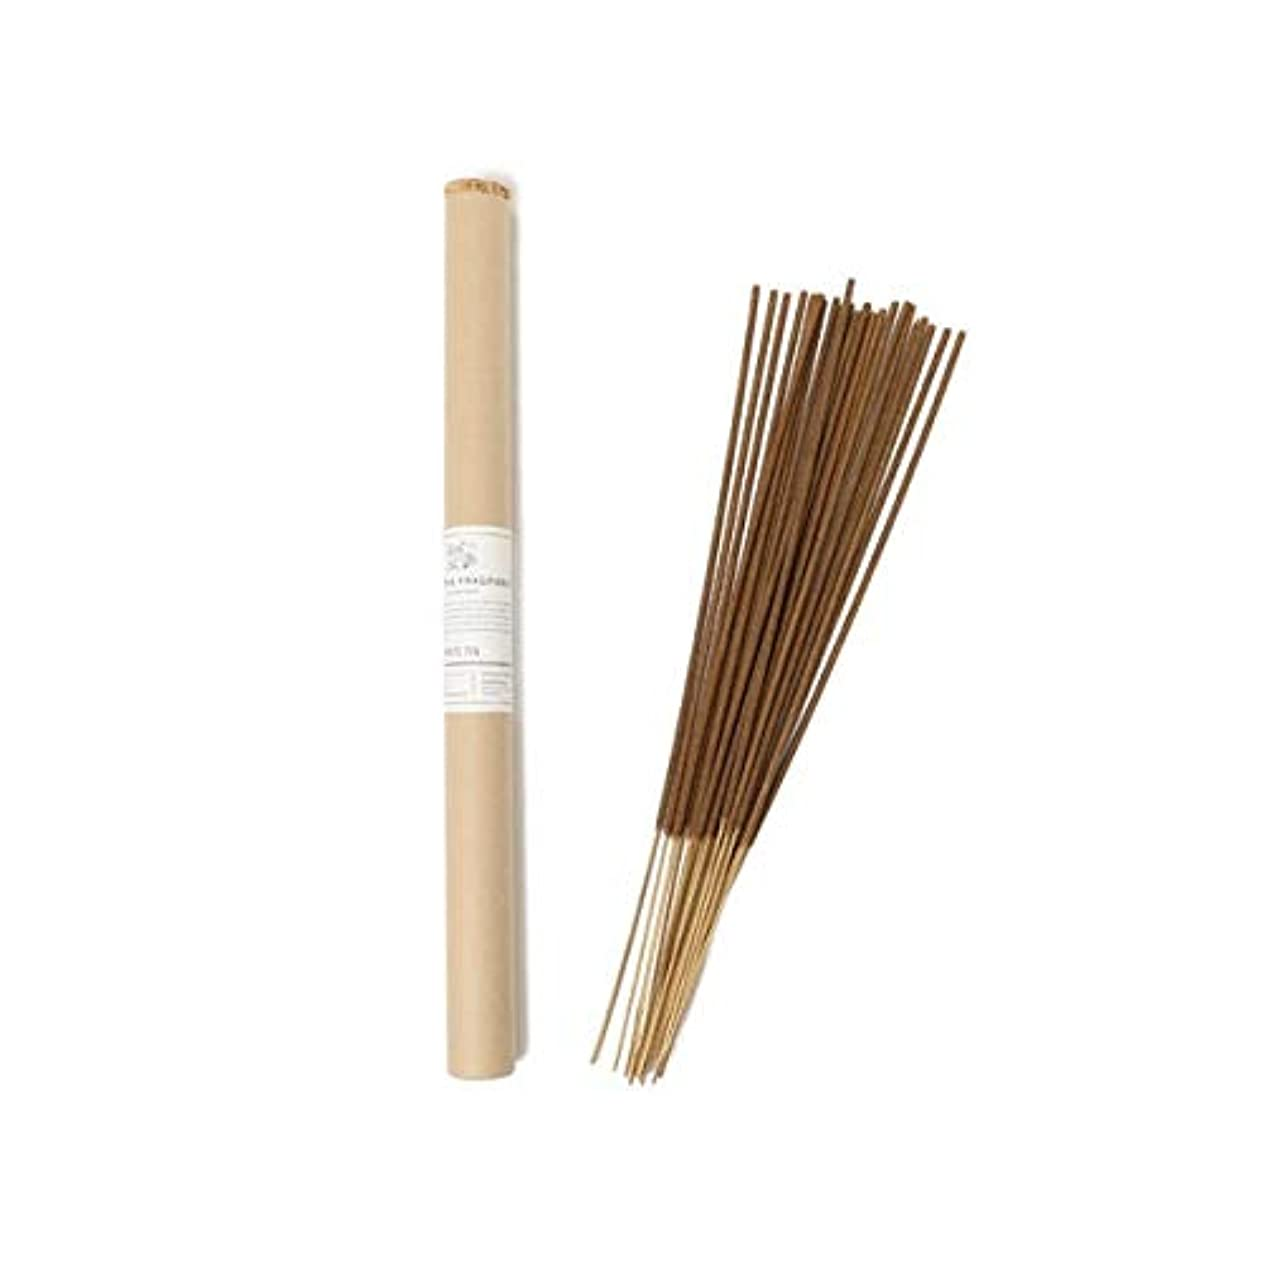 振幅アイロニーリングbPrビームス(雑貨)(bprbeams) APOTHEKE FRAGRANCE/INCENSE STICKS (お香)